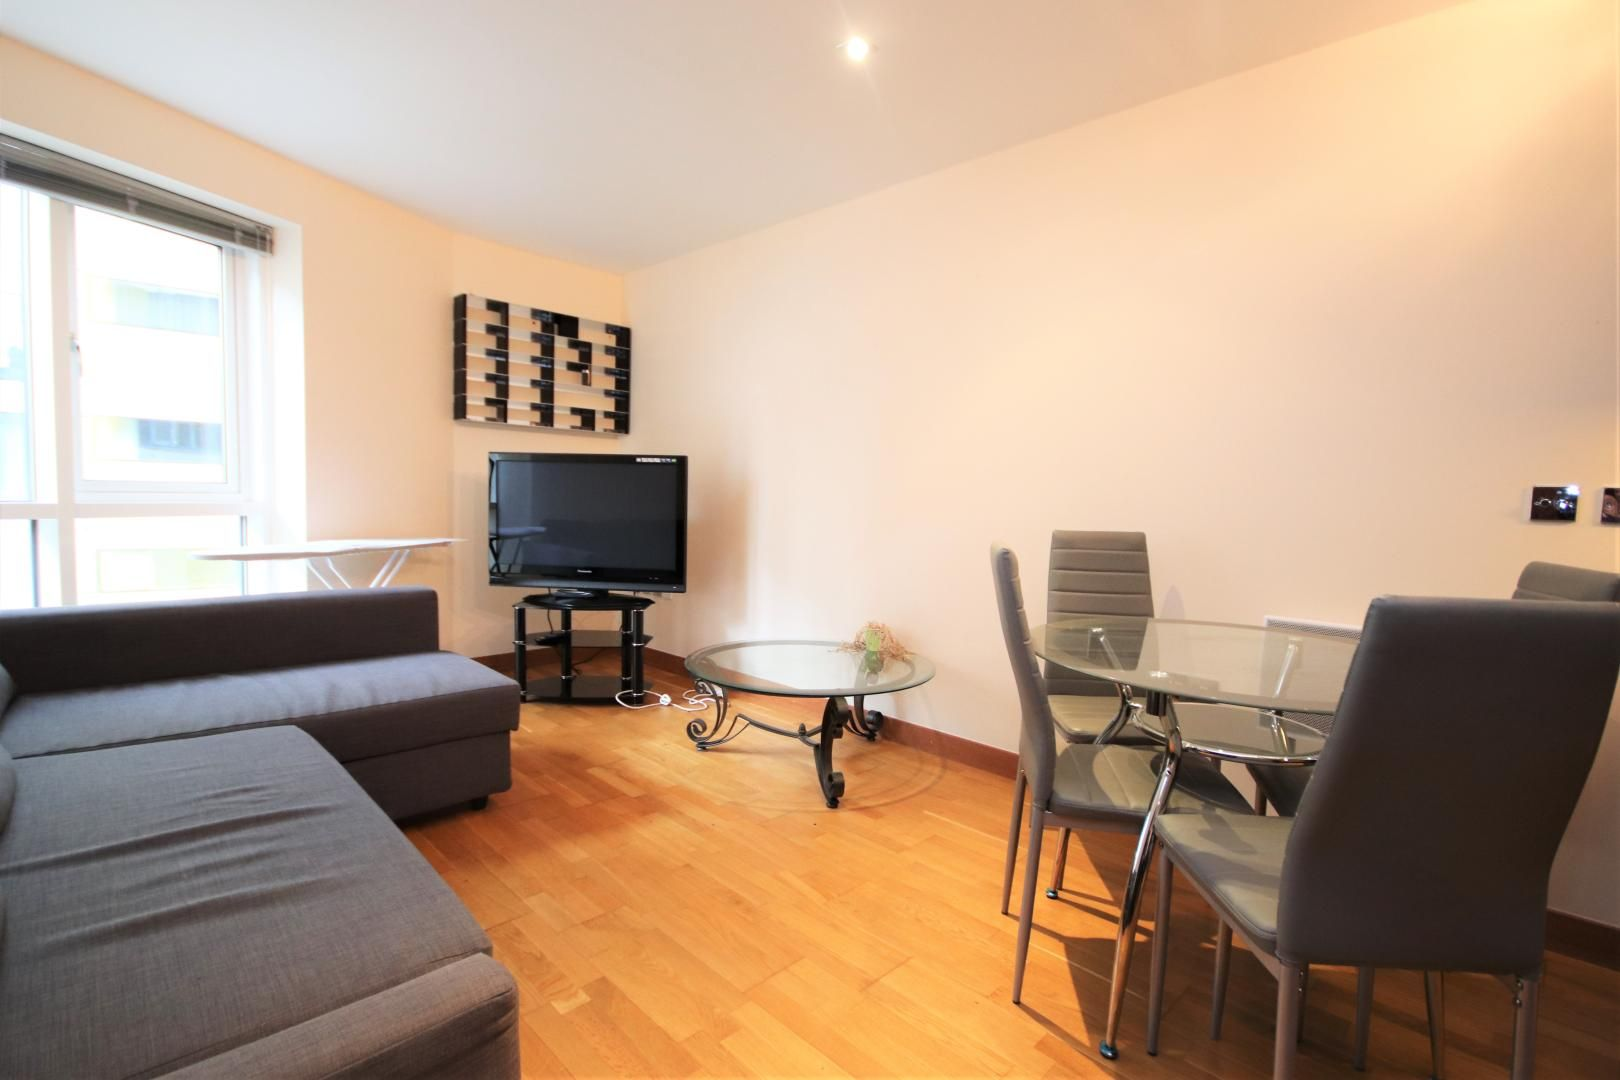 2 bed flat to rent in Block Wharf, E14